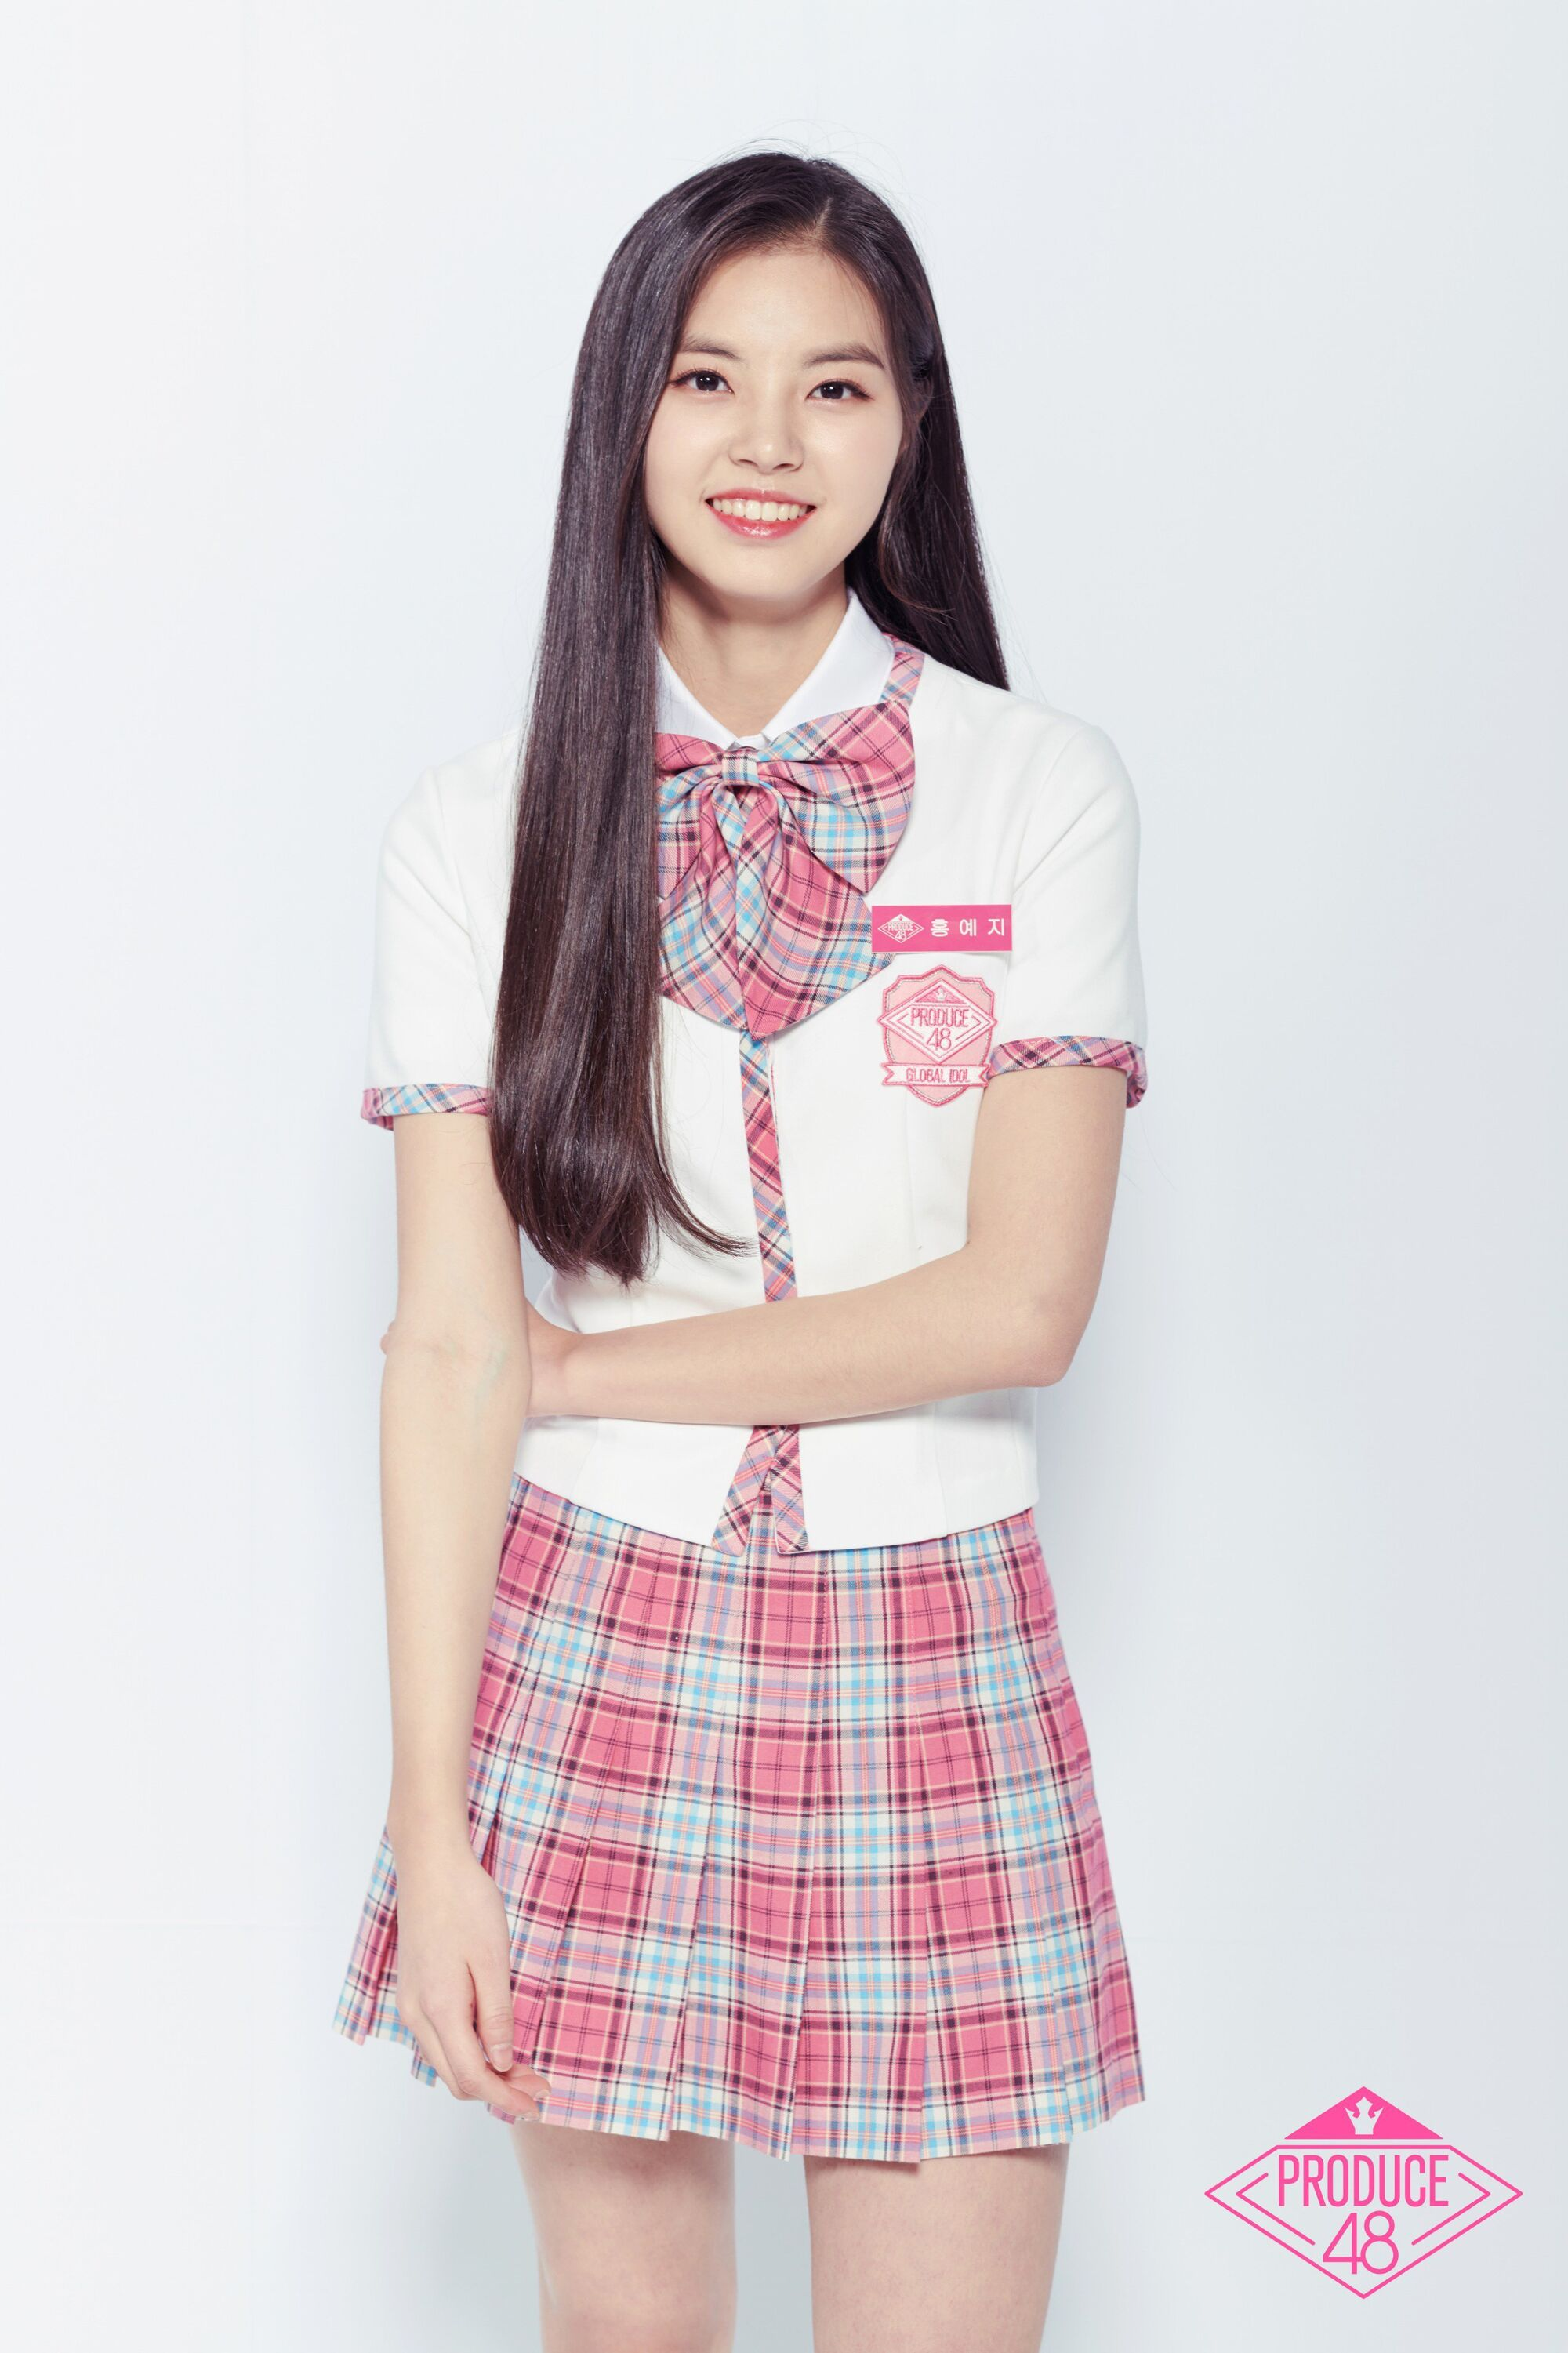 Hong Yeji | Produce 101 Wikia | FANDOM powered by Wikia